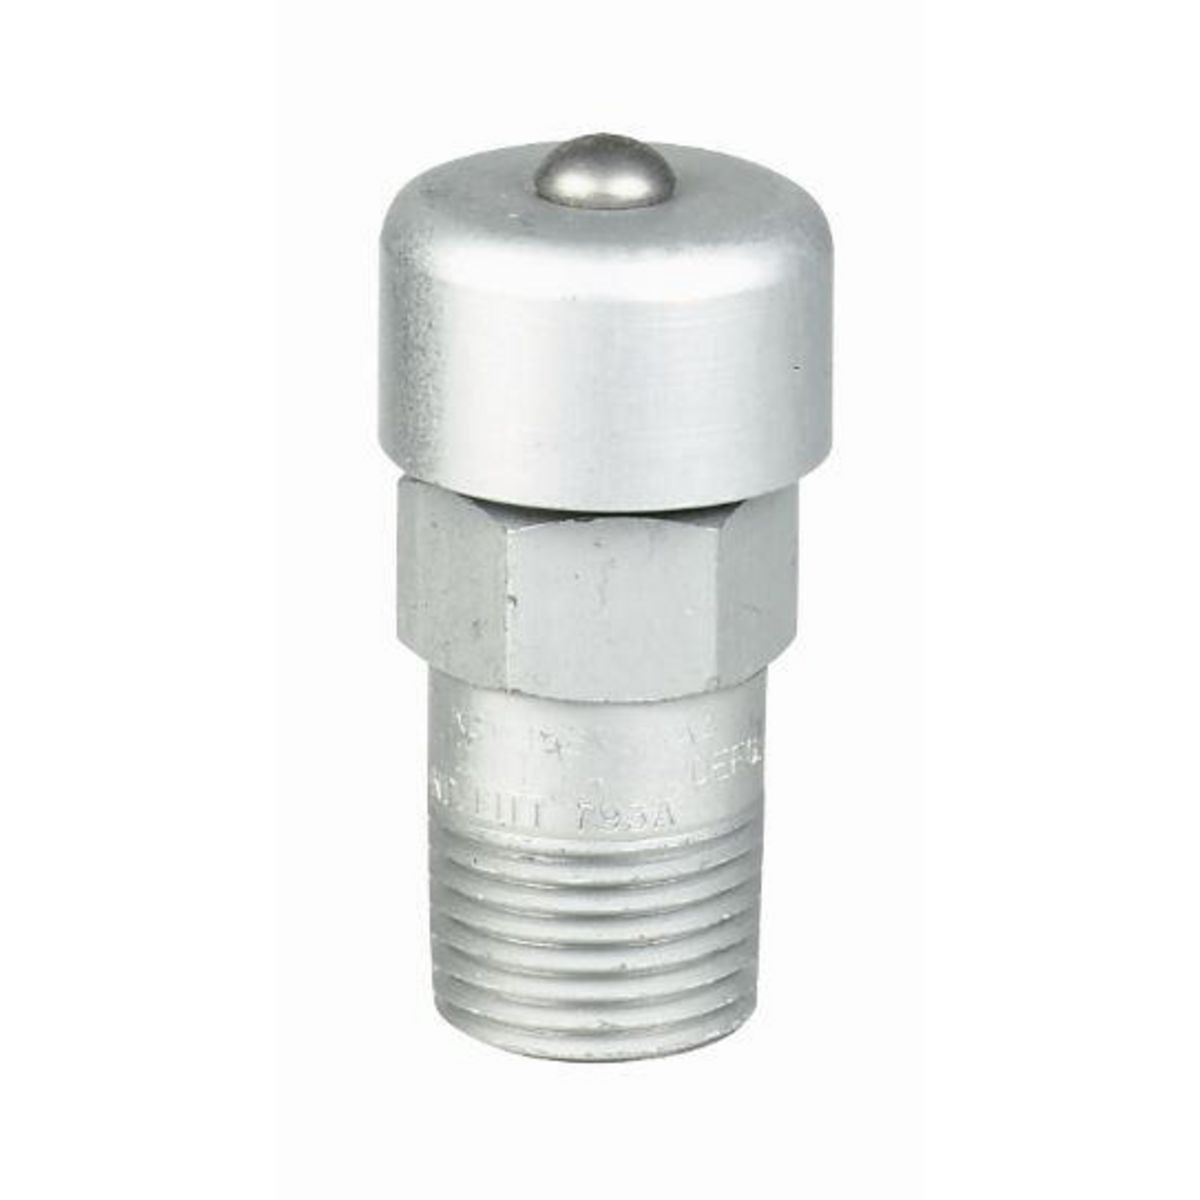 Hubbell KB1B Conduit Breather